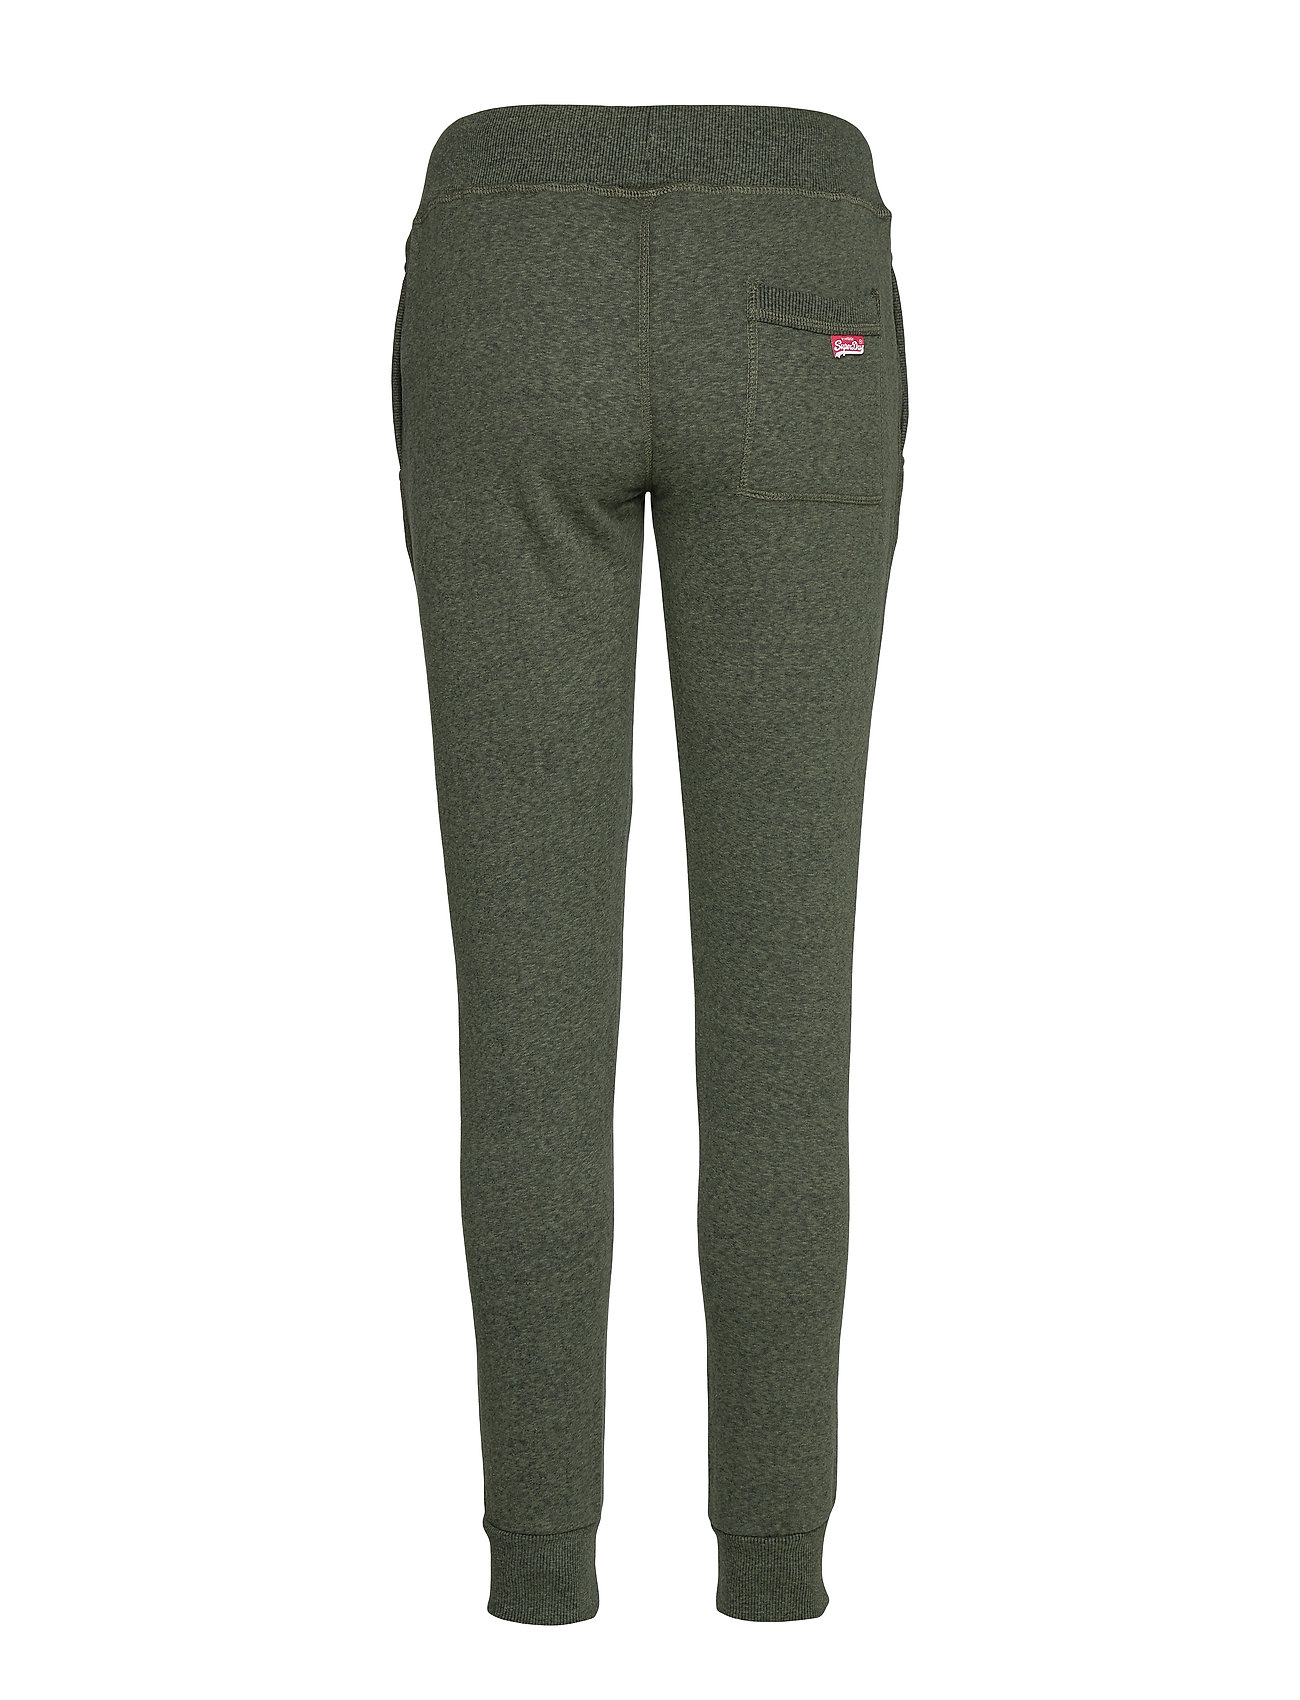 Superdry TRACK & FIELD JOGGERS - EMERALD GREEN SNOWY